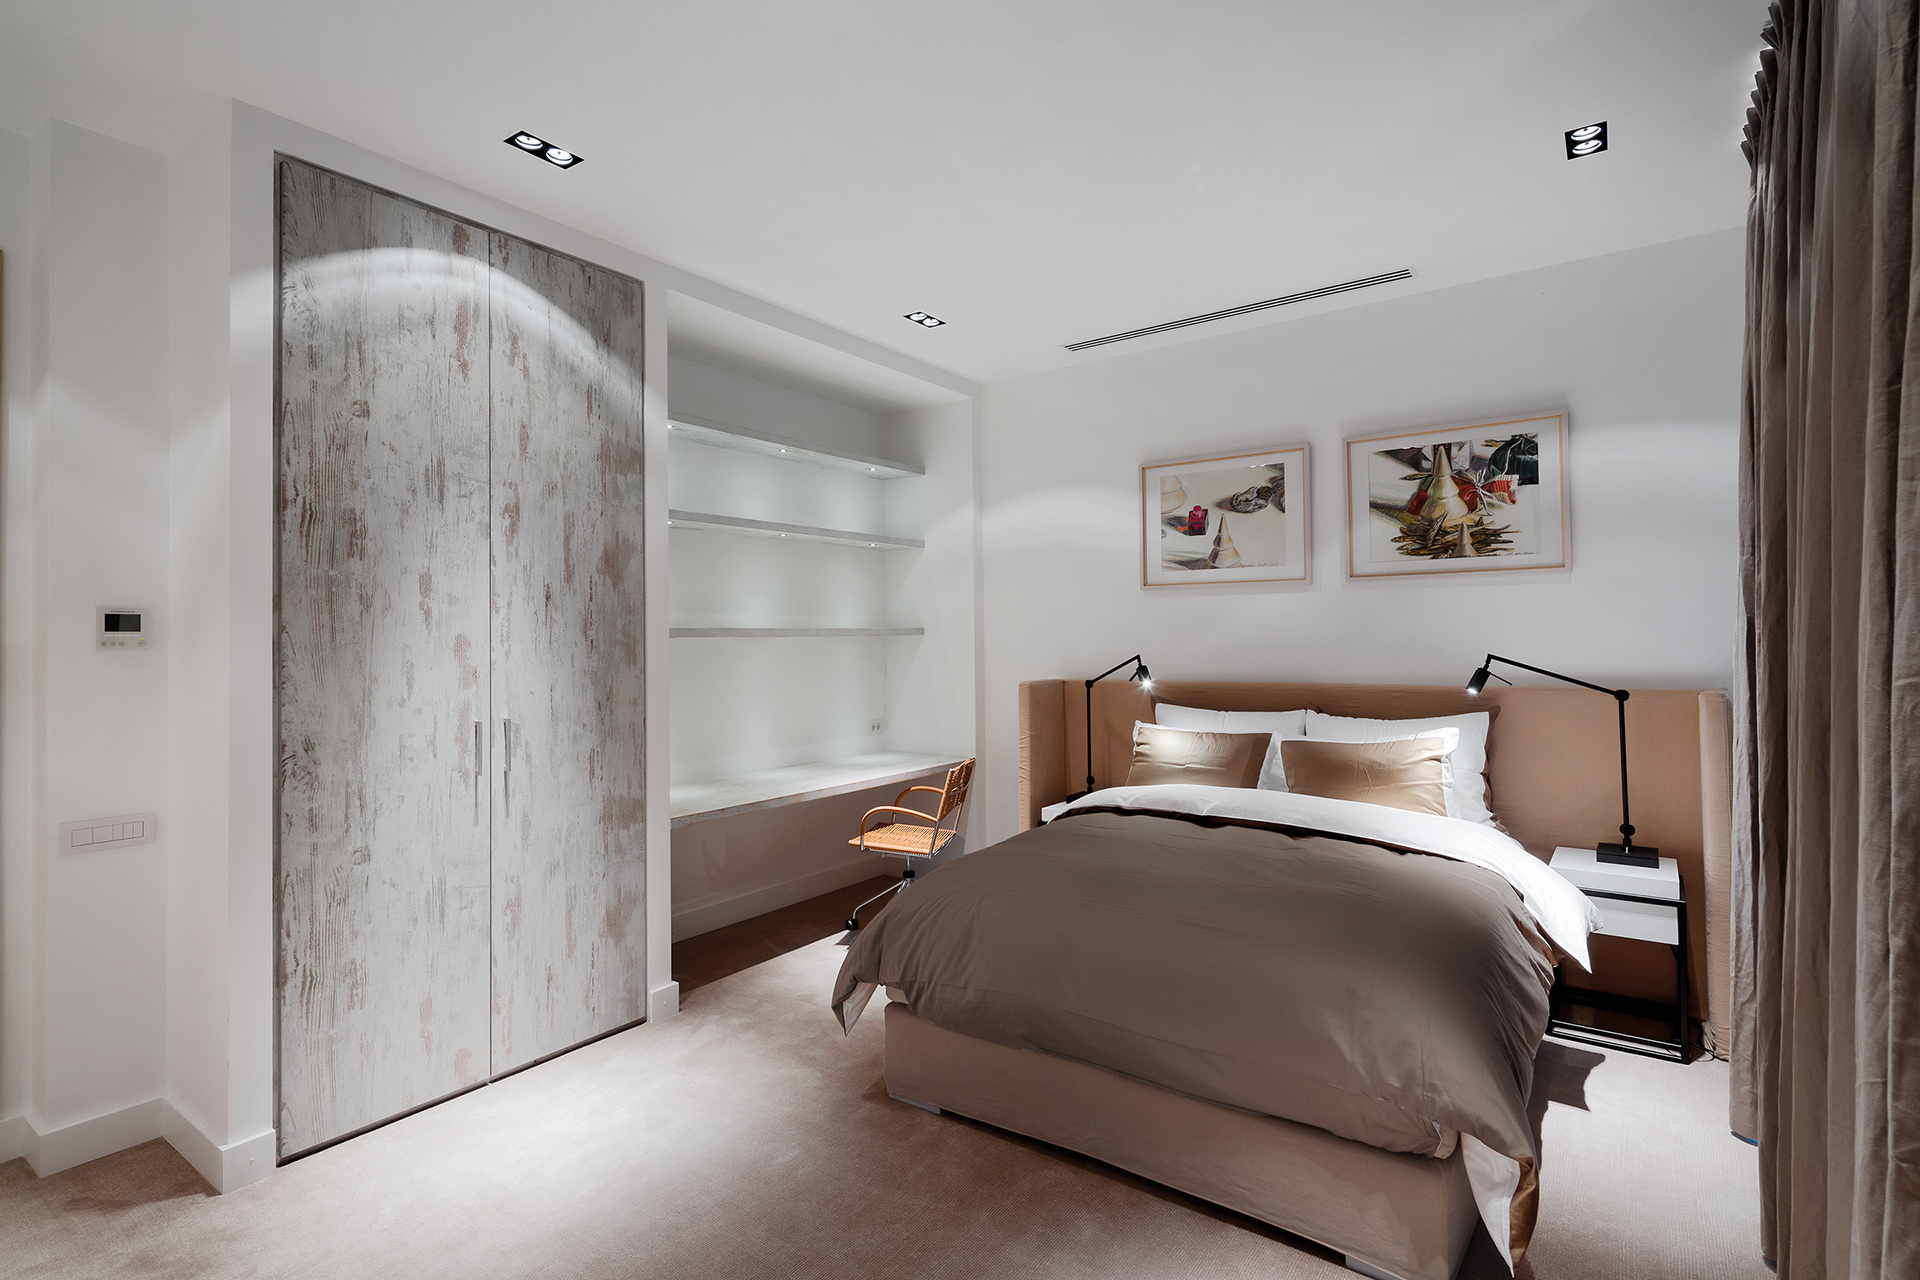 Guestroom bed in beige with working desk and closet space